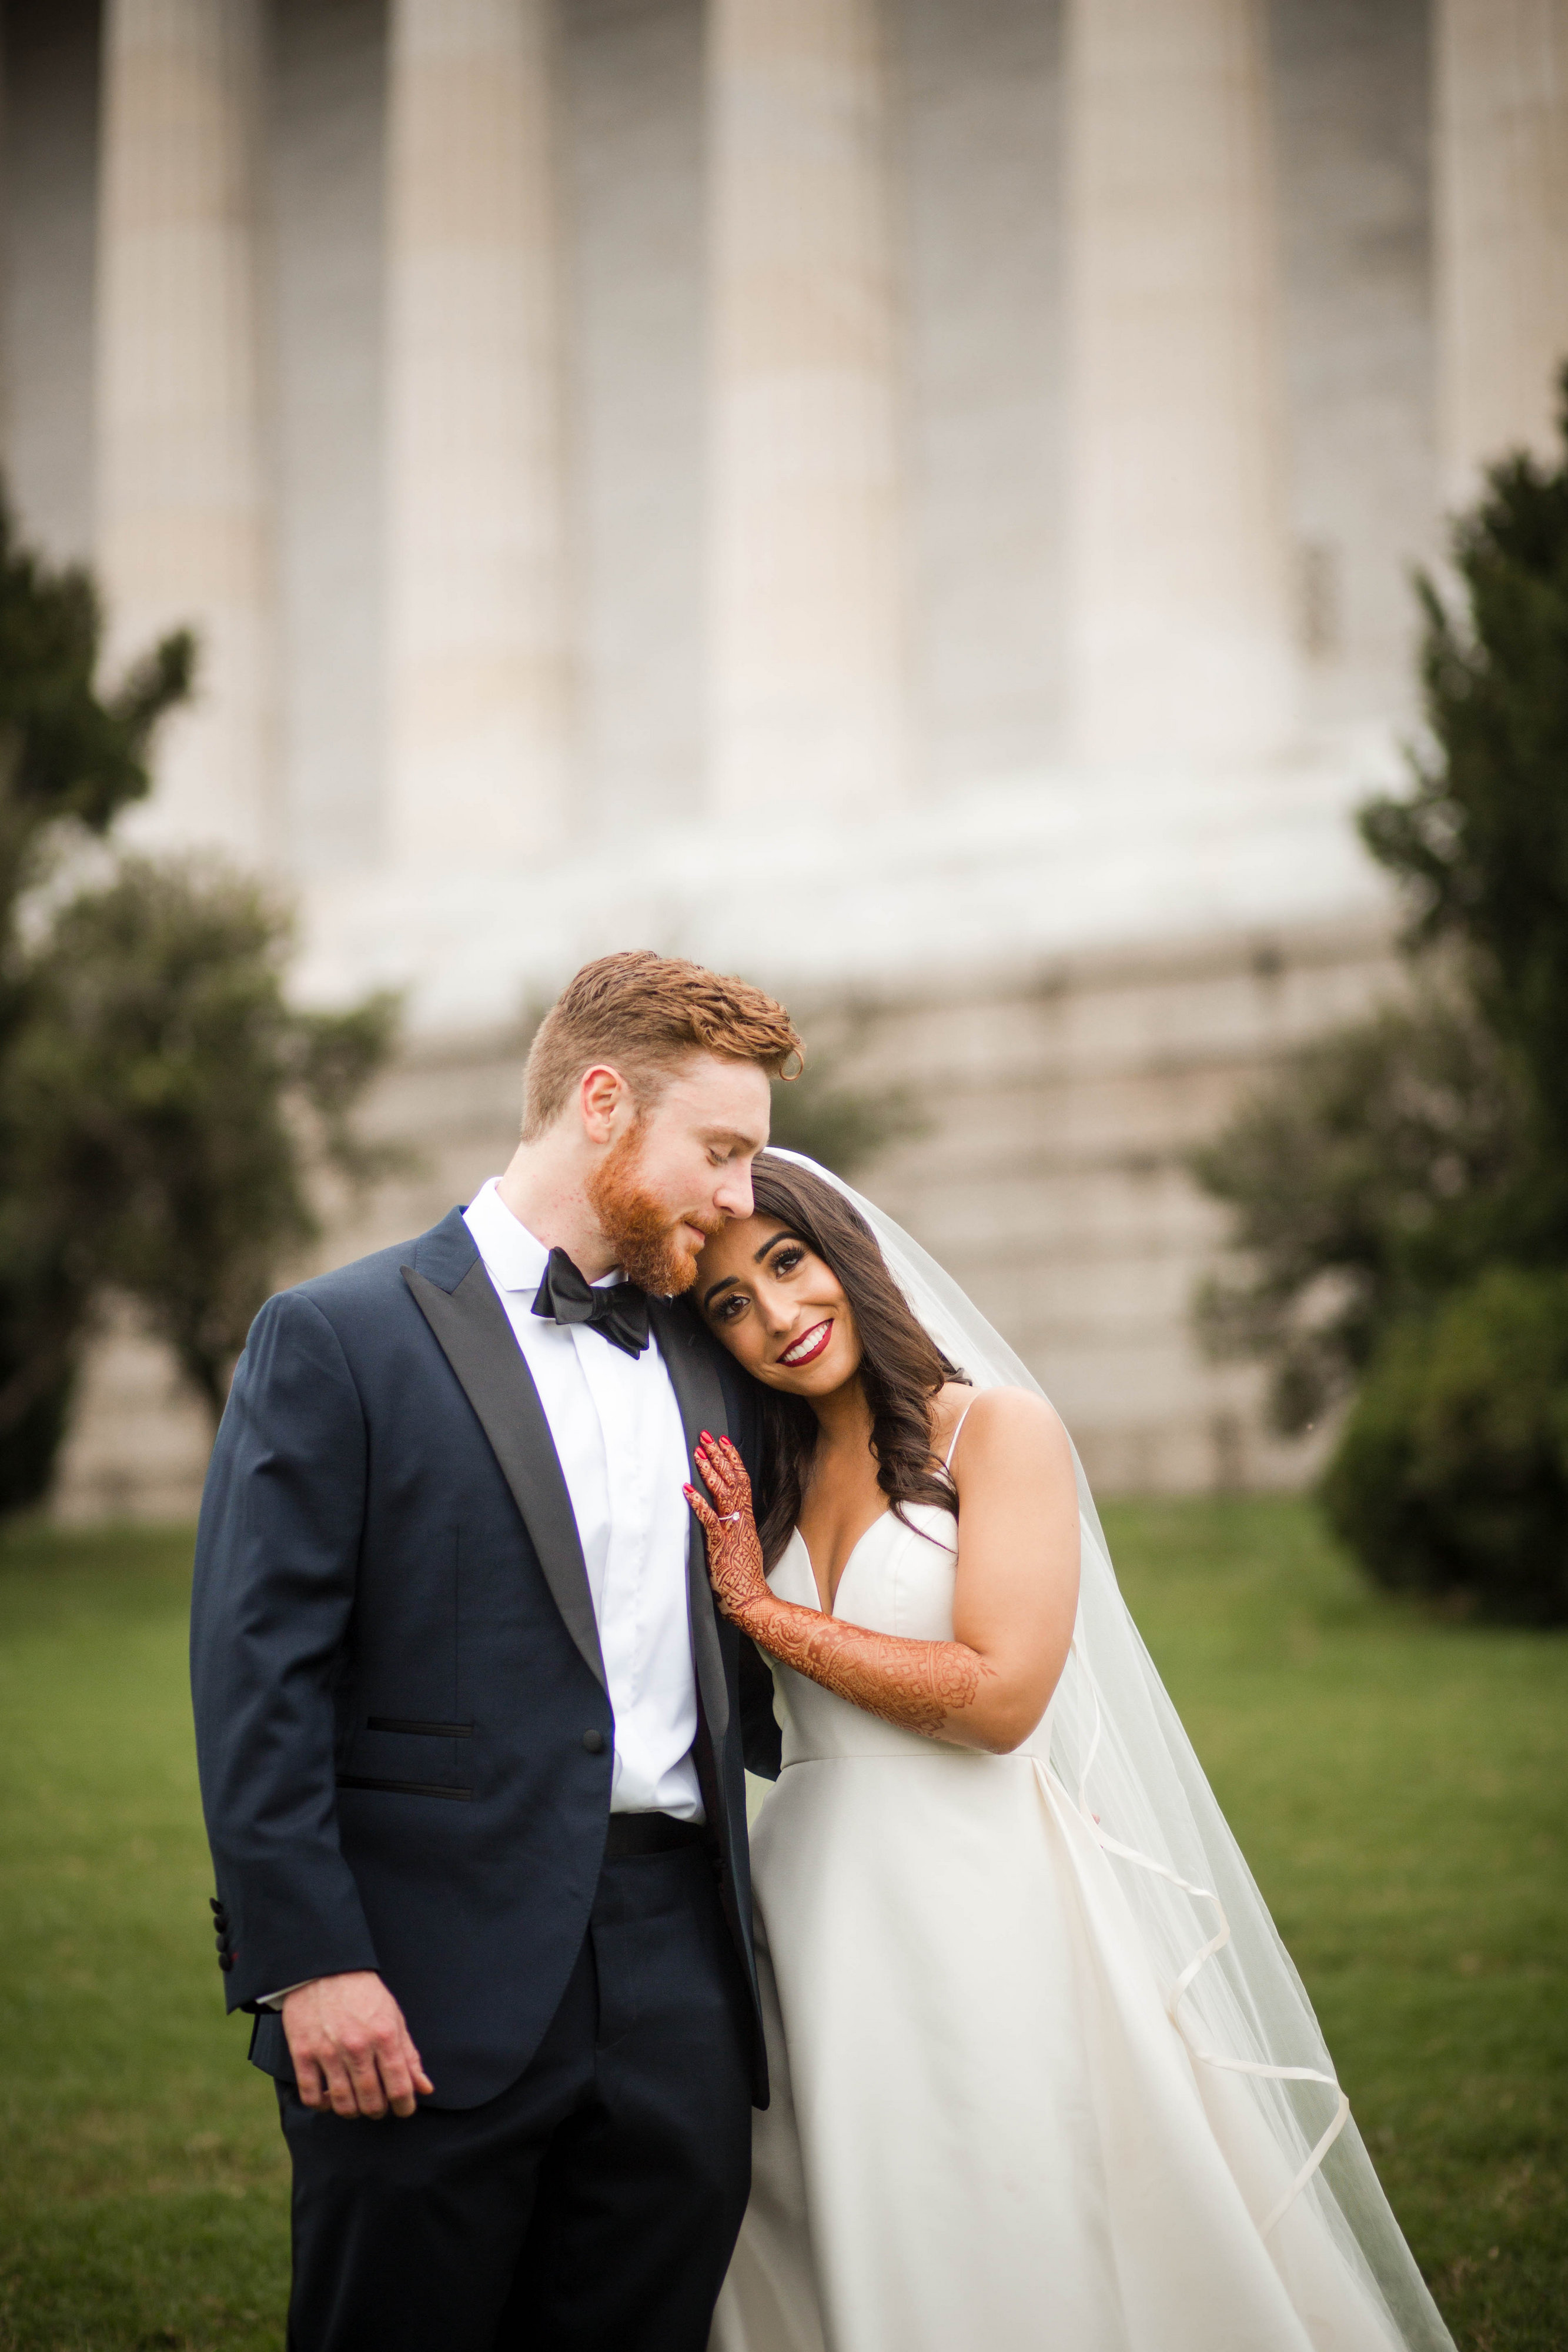 They were instantly drawn to her, and knew they would work well together on their own big day. (Image: Laura Bryan Photography){ }